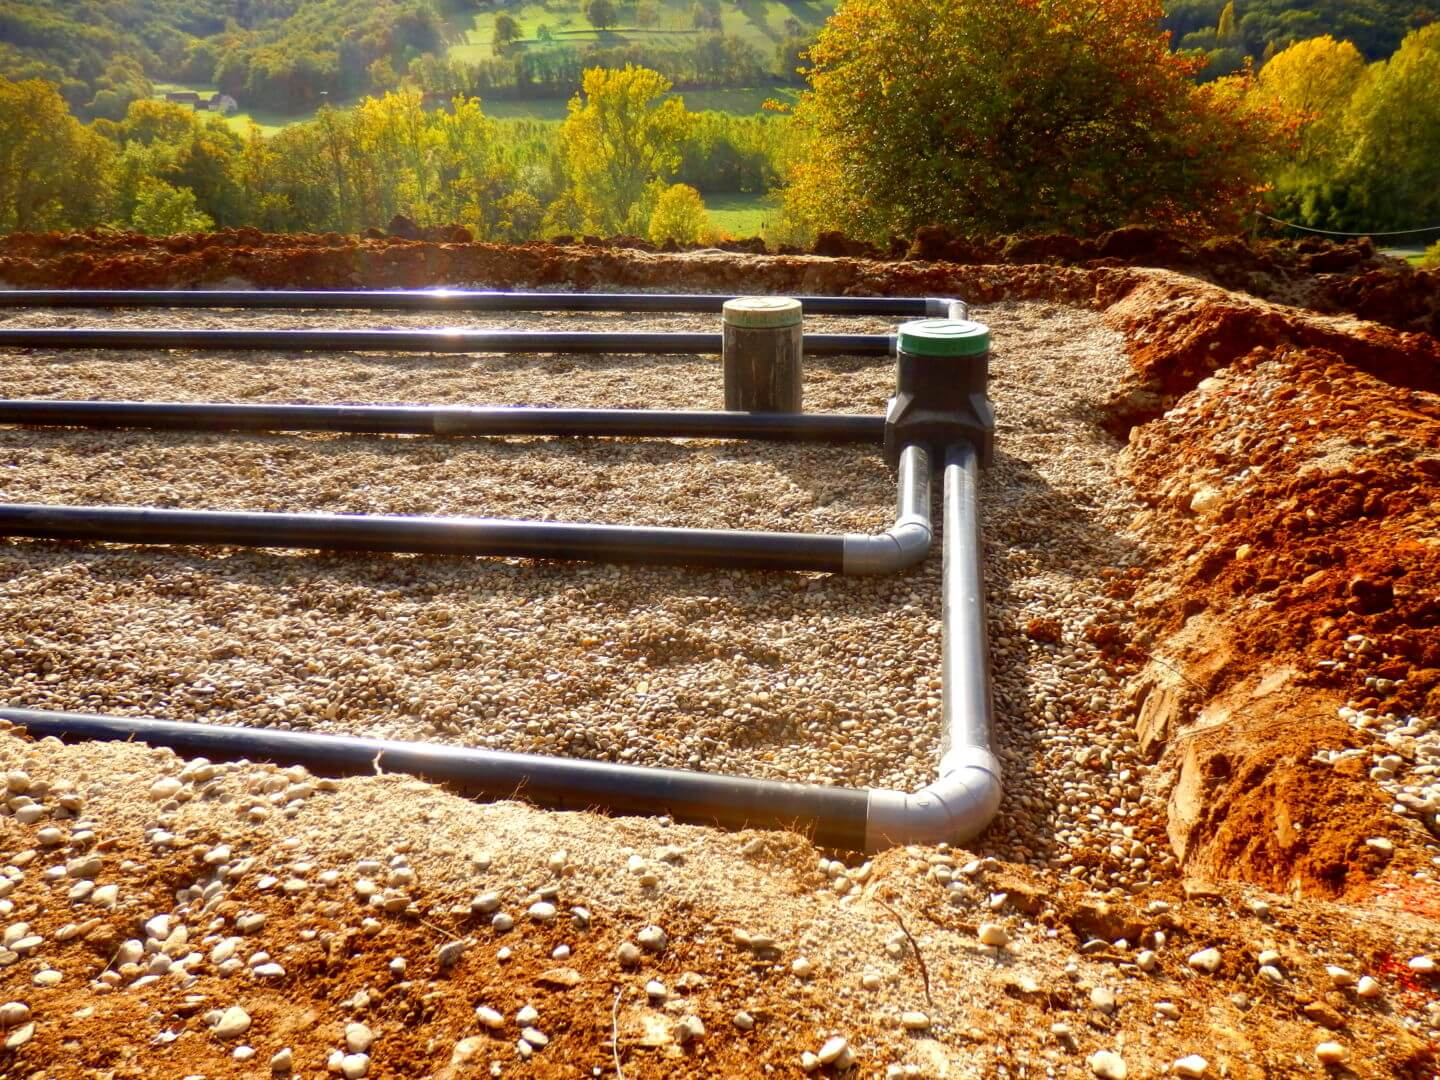 Municipal and Community Septic Systems-Mesquite TX Septic Tank Pumping, Installation, & Repairs-We offer Septic Service & Repairs, Septic Tank Installations, Septic Tank Cleaning, Commercial, Septic System, Drain Cleaning, Line Snaking, Portable Toilet, Grease Trap Pumping & Cleaning, Septic Tank Pumping, Sewage Pump, Sewer Line Repair, Septic Tank Replacement, Septic Maintenance, Sewer Line Replacement, Porta Potty Rentals, and more.